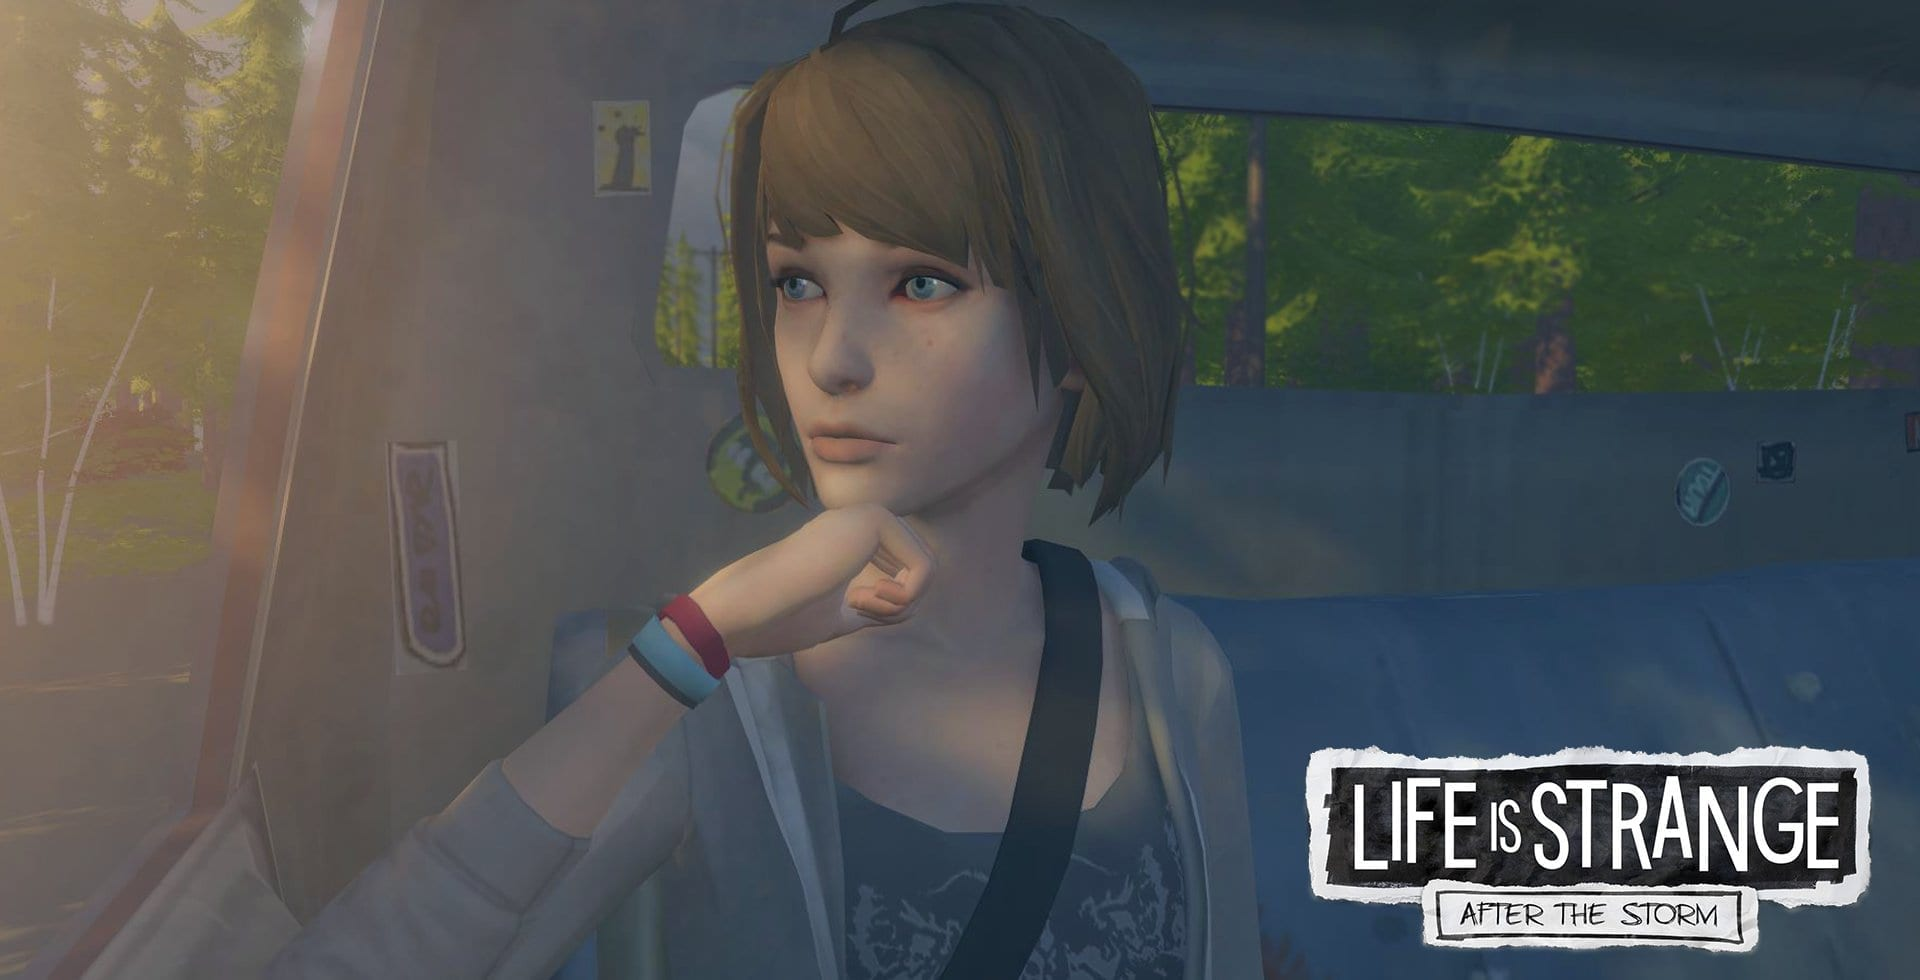 Life is Strange: After the Storm Is A Fan-Made Sequel To The First Game